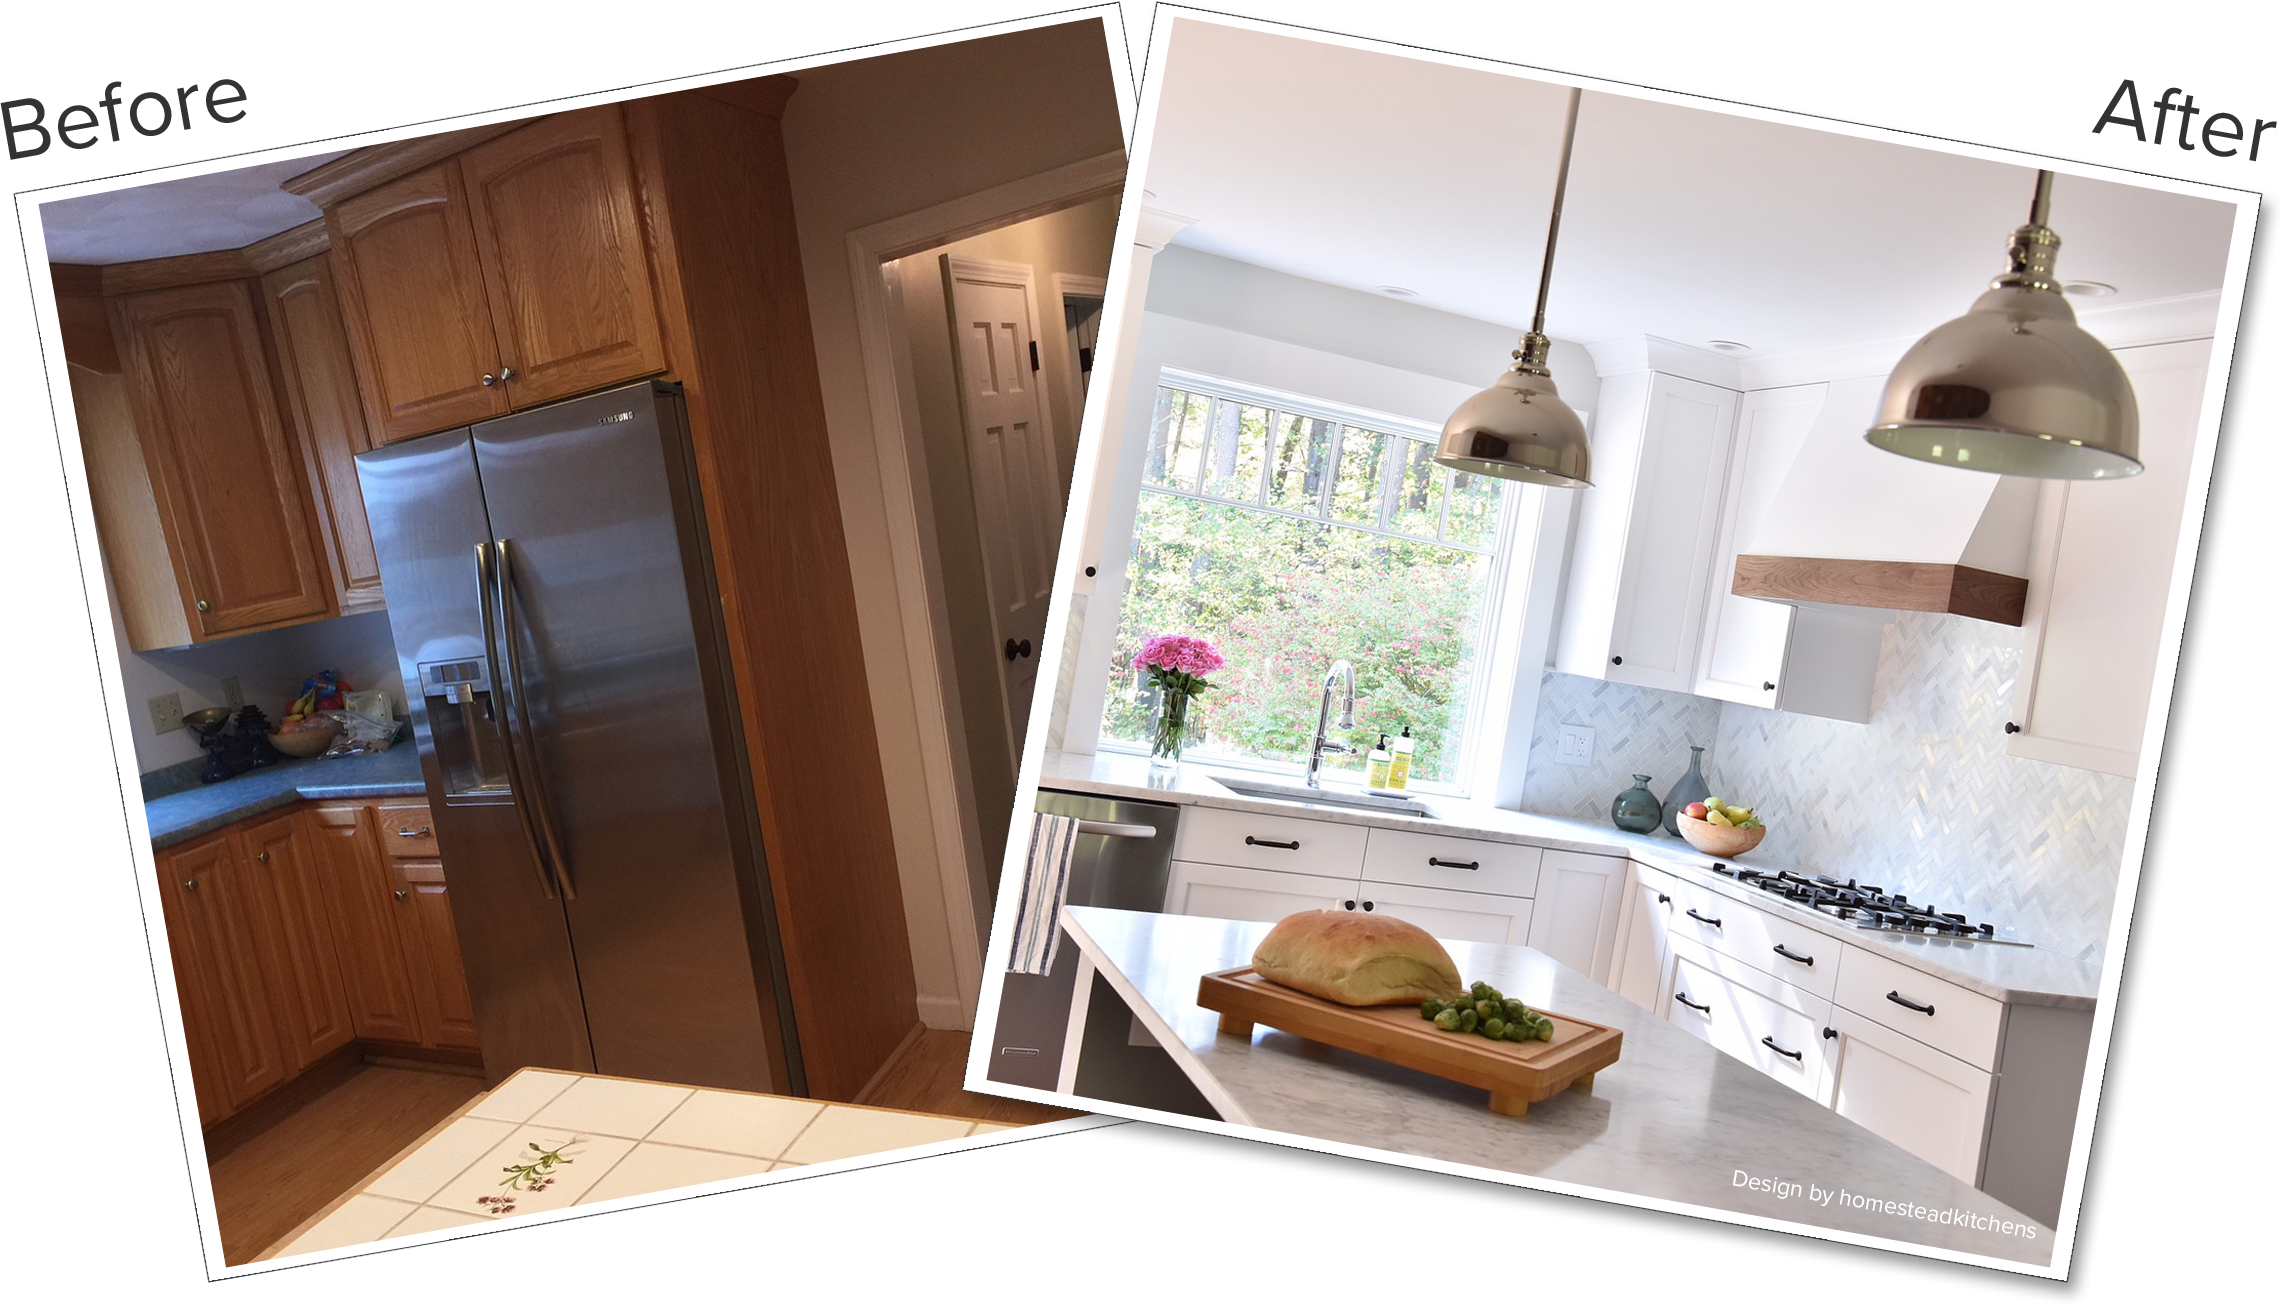 Contemporary kitchen before and after